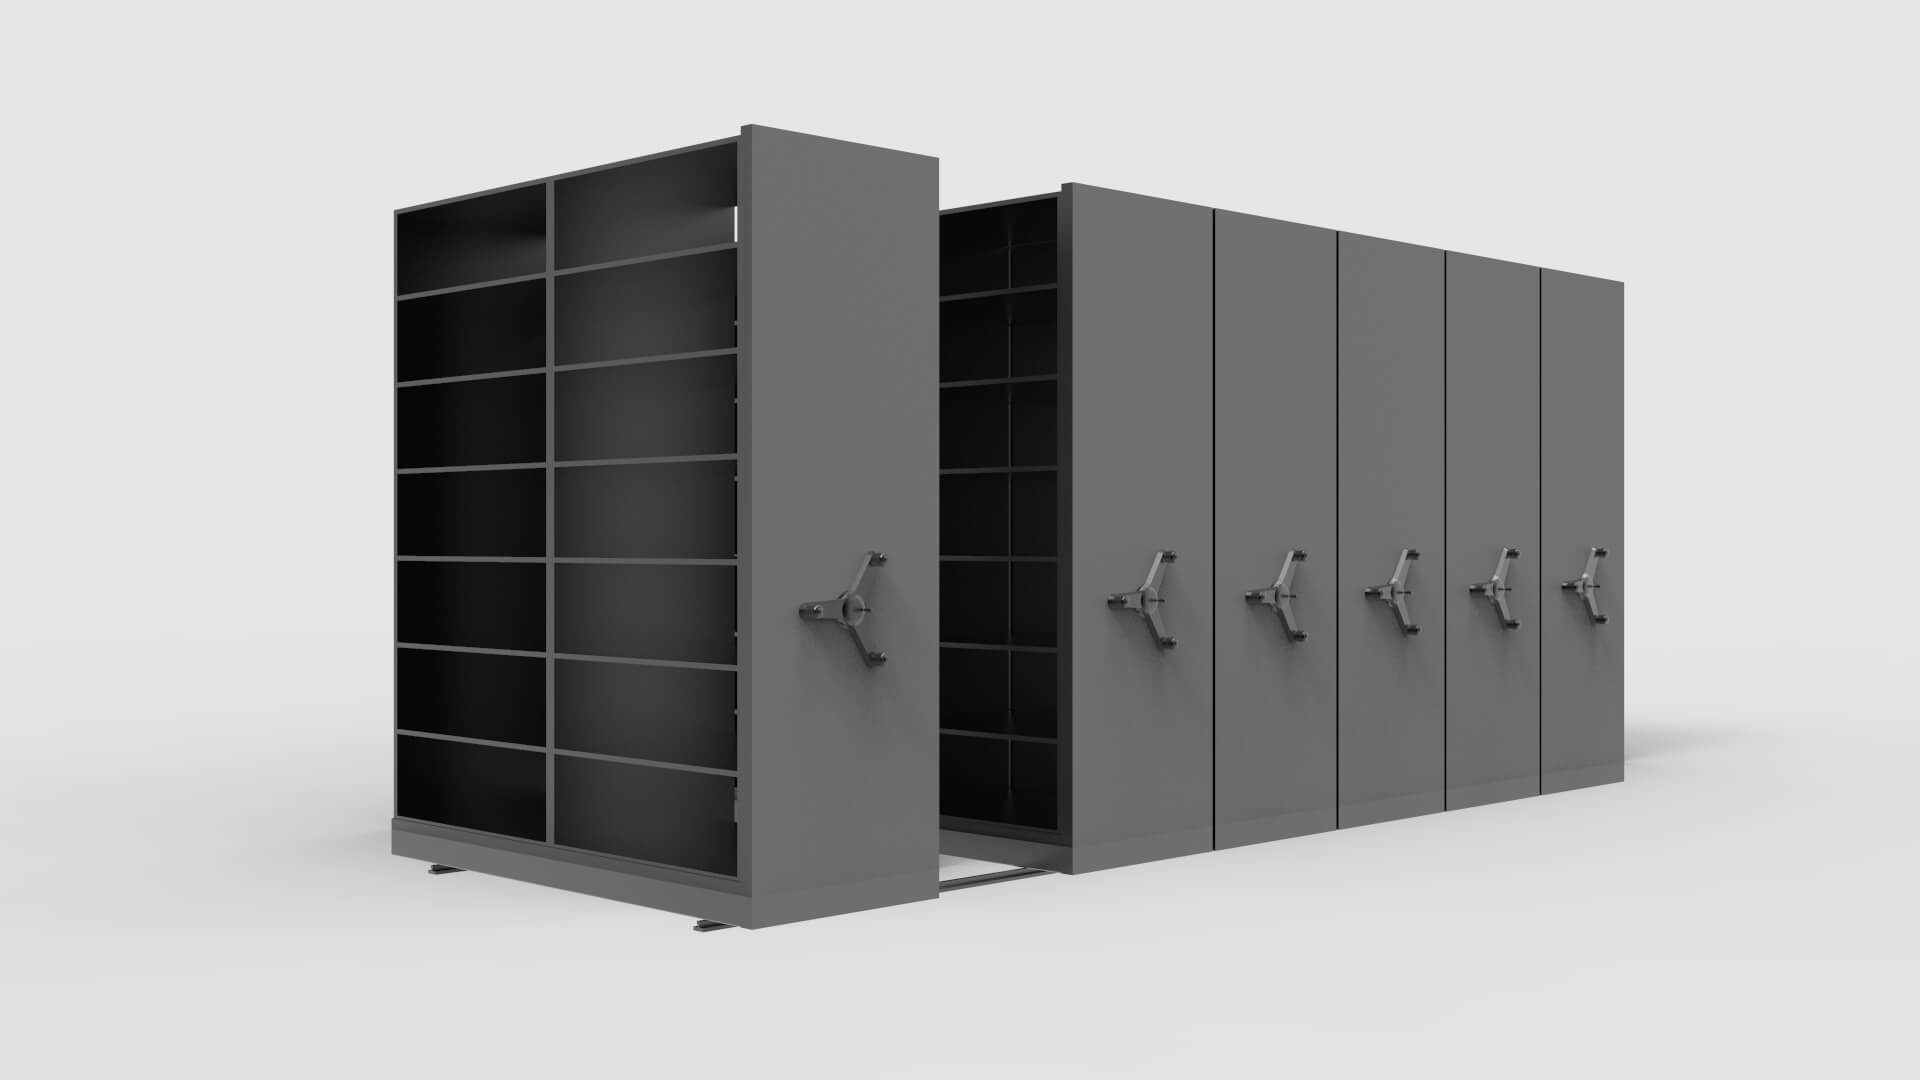 steel-mobile-shelving-systems-product.jpg